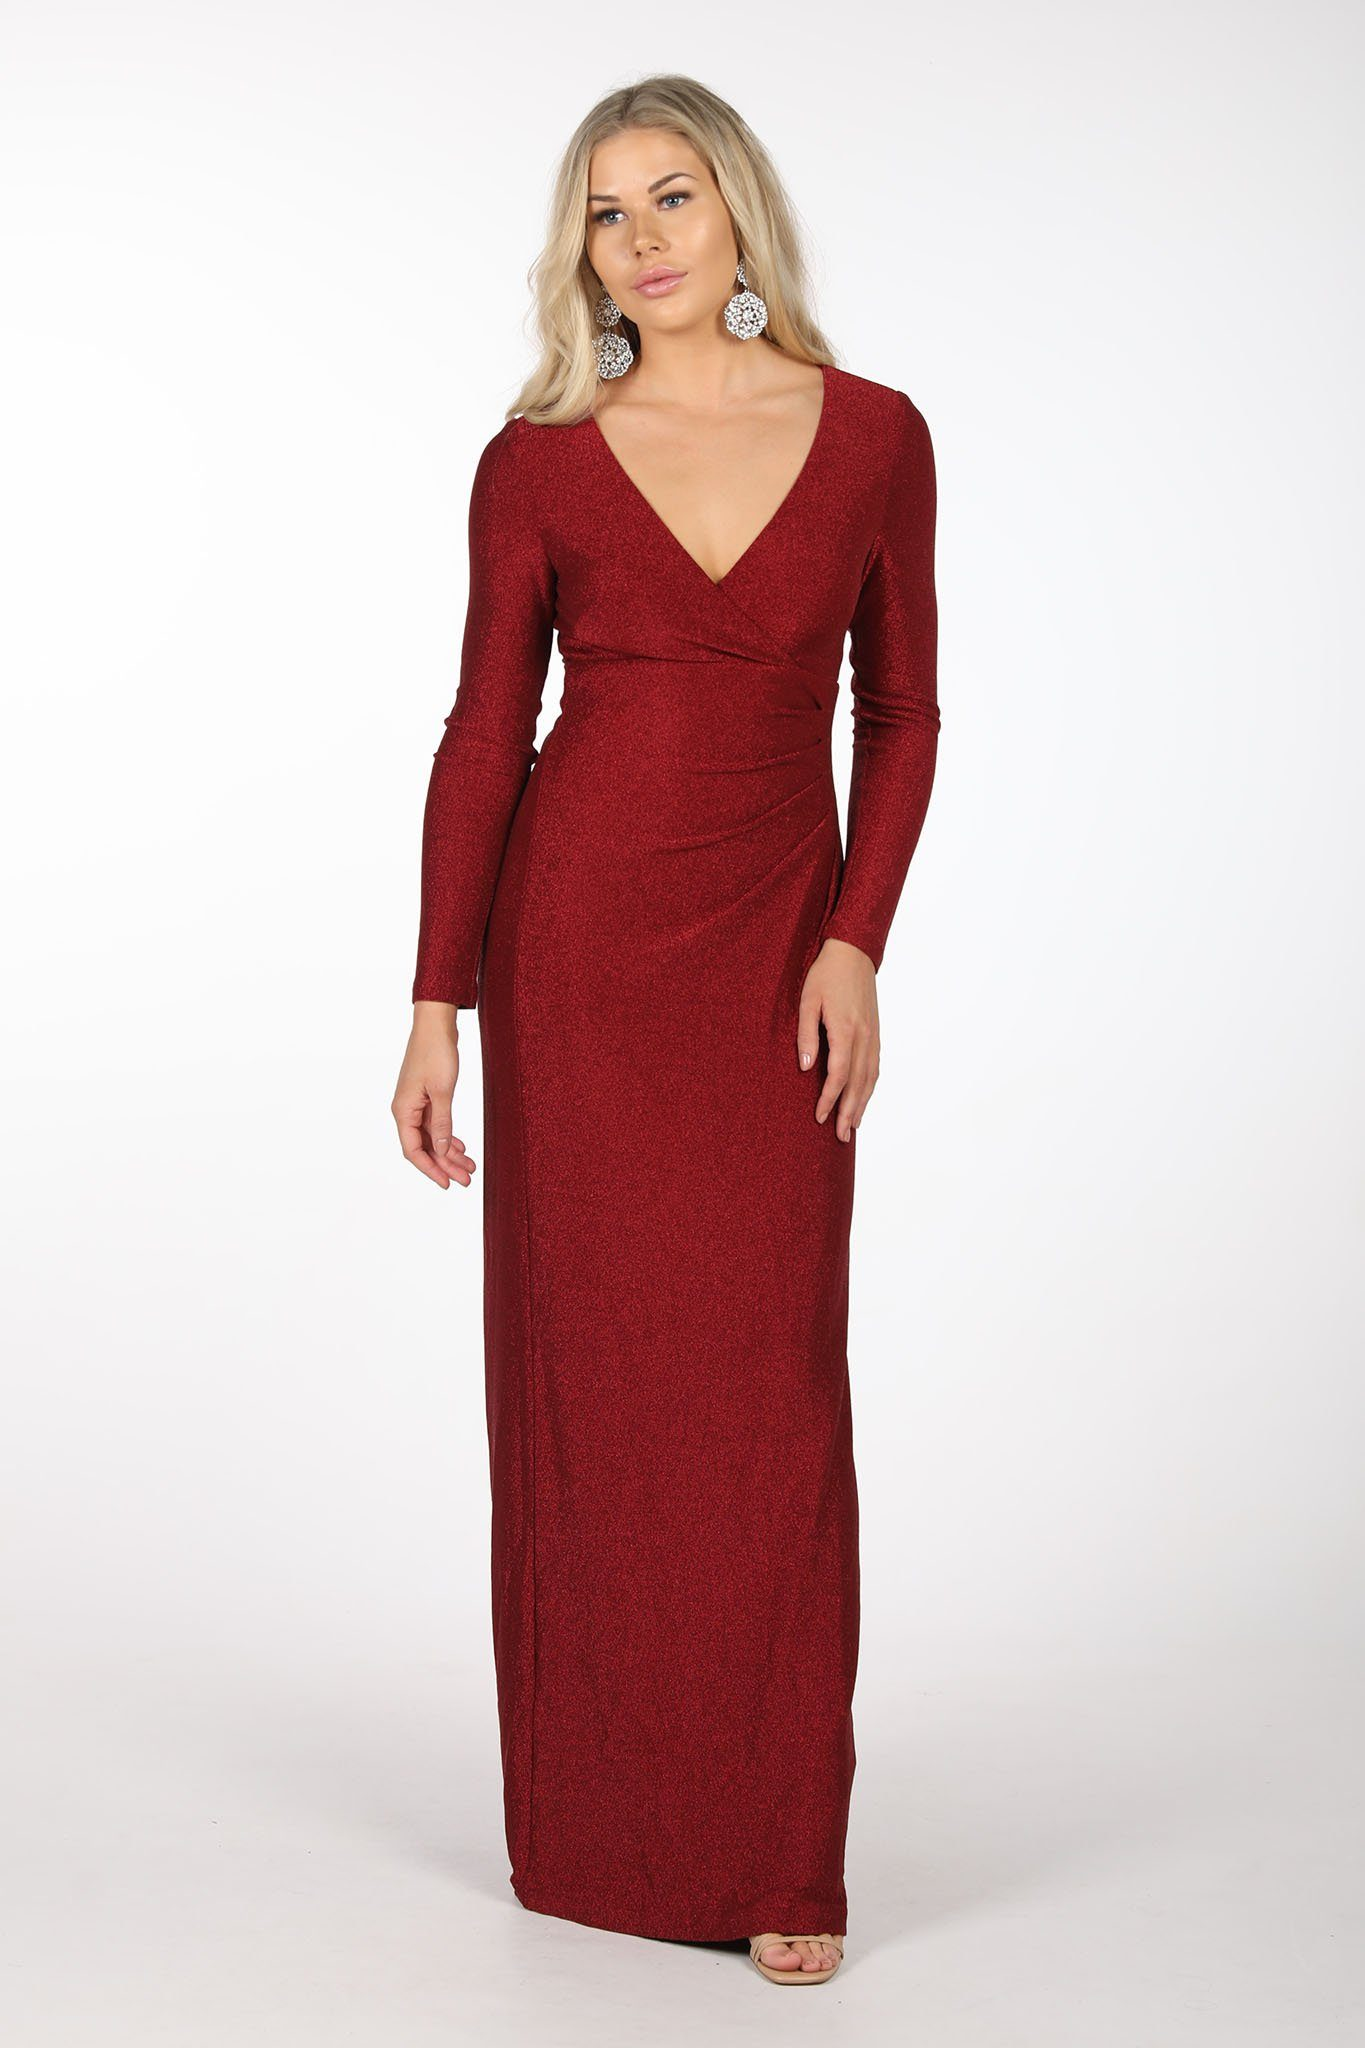 Deep Red Glitter Bodycon Column Maxi Dress with Long Sleeves, V Neck and Pleating Details at Waist